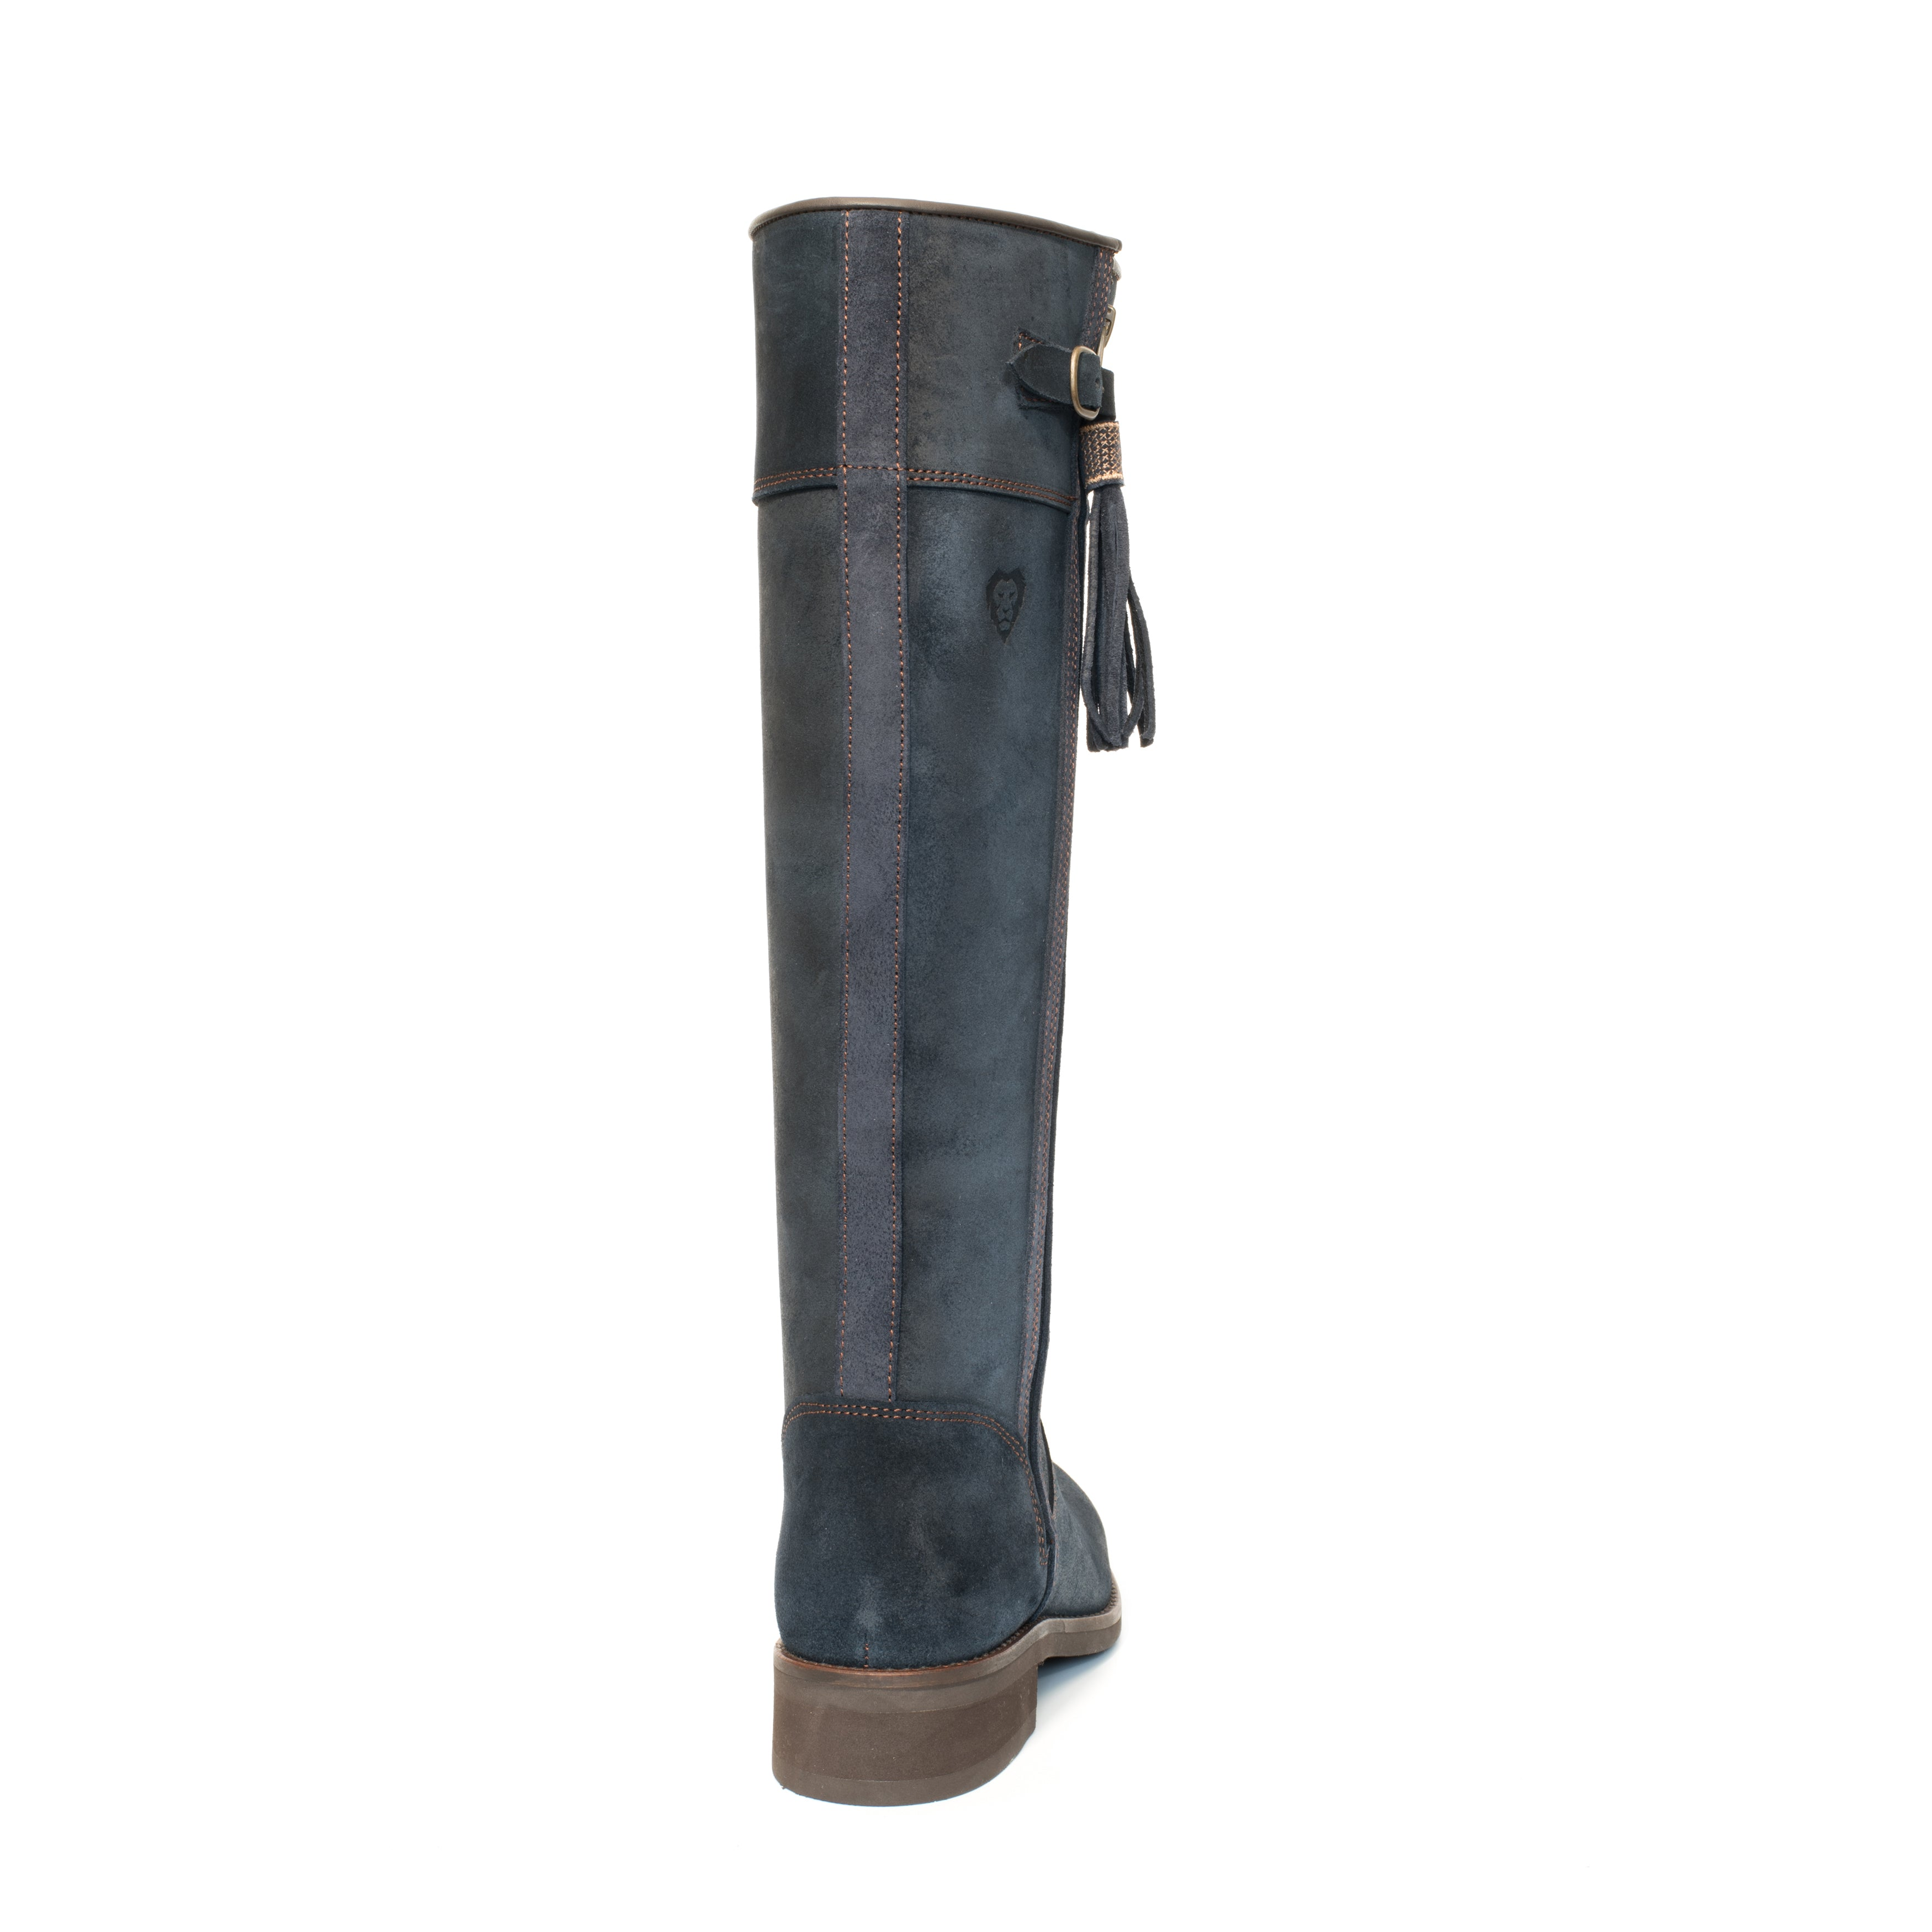 Flat spanish style long boots